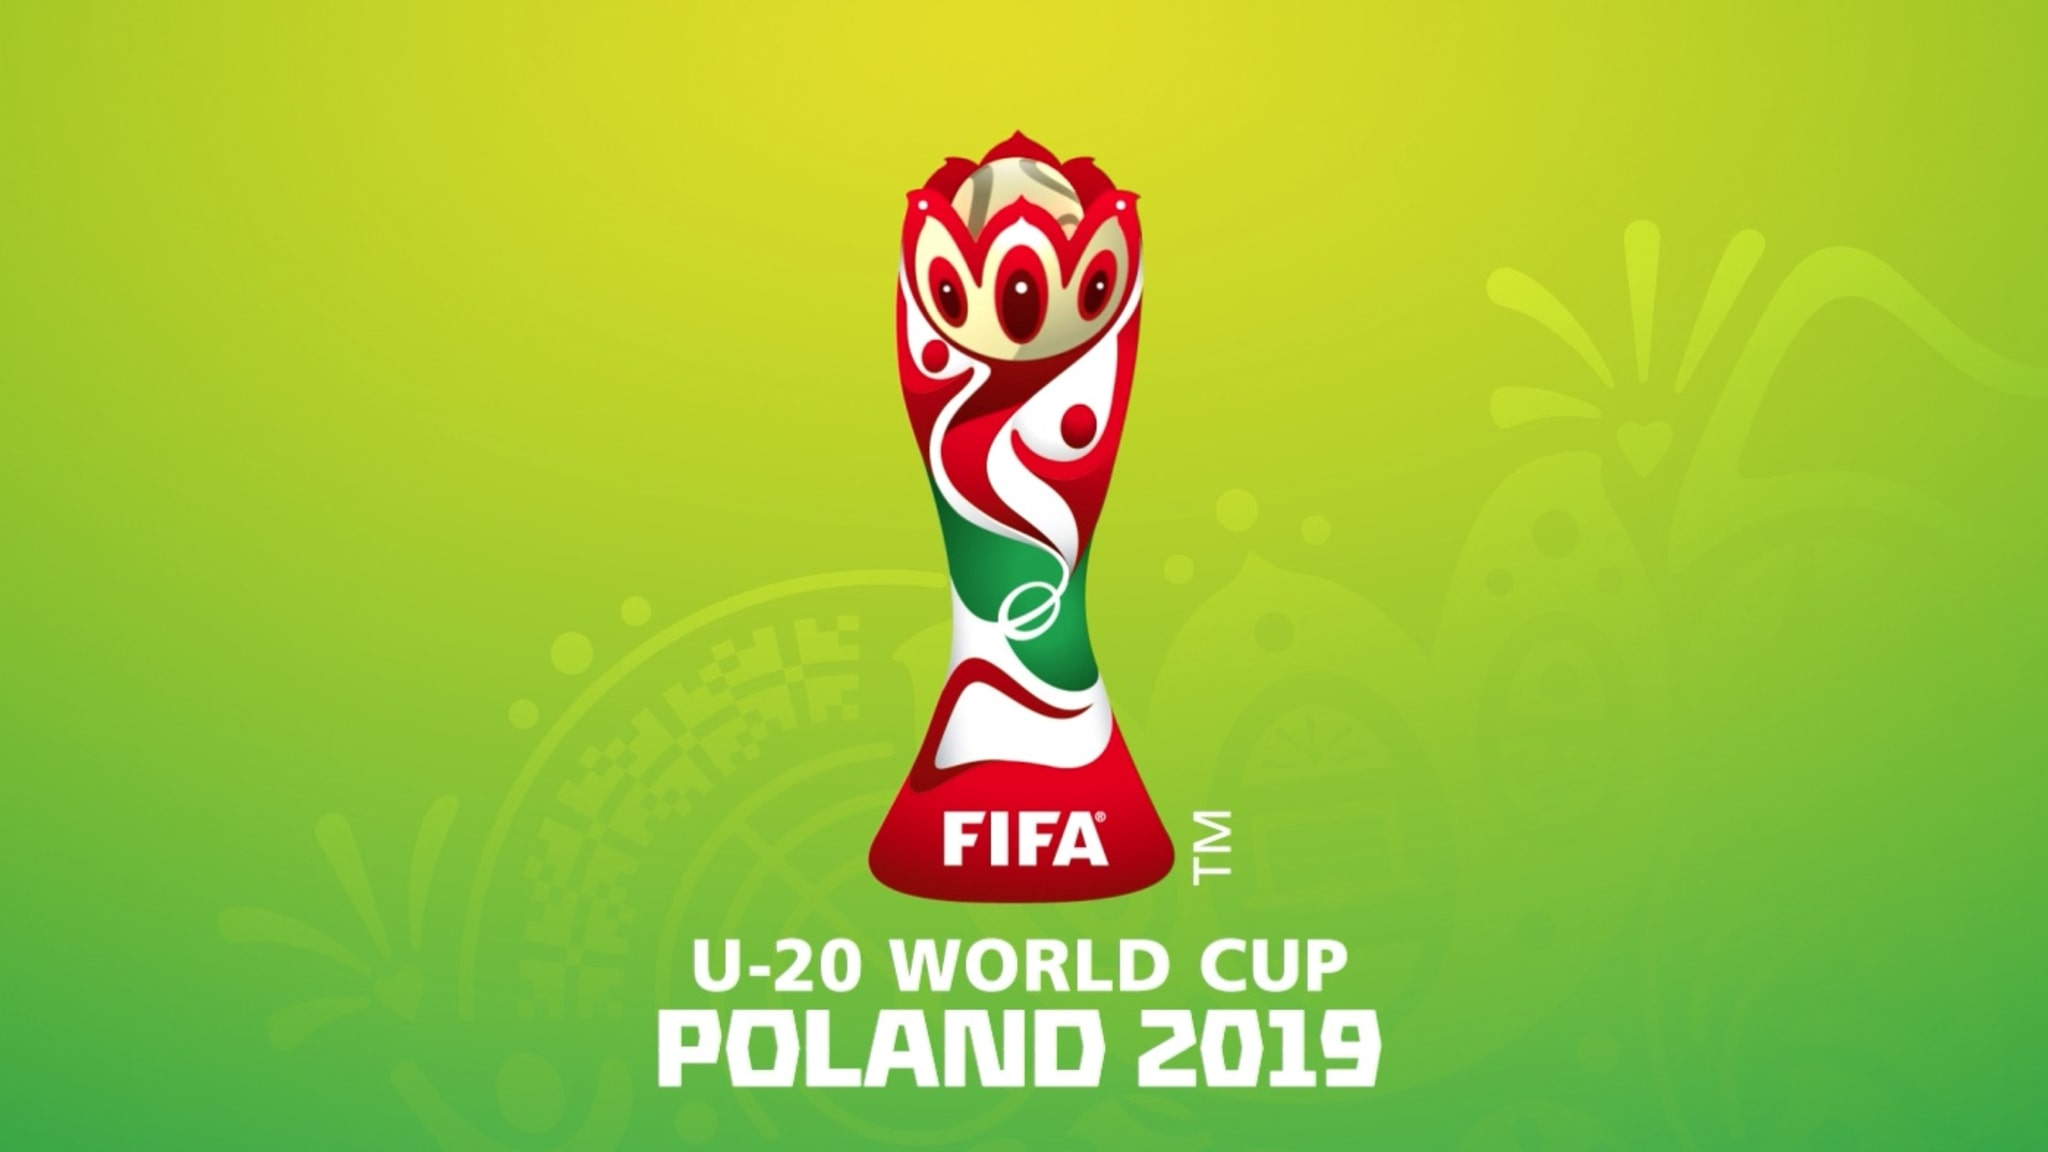 """2019 U20 World Cup: Meet The Teams Hoping To Produce The Next """"Messi"""", """"Ronaldo"""" 97"""